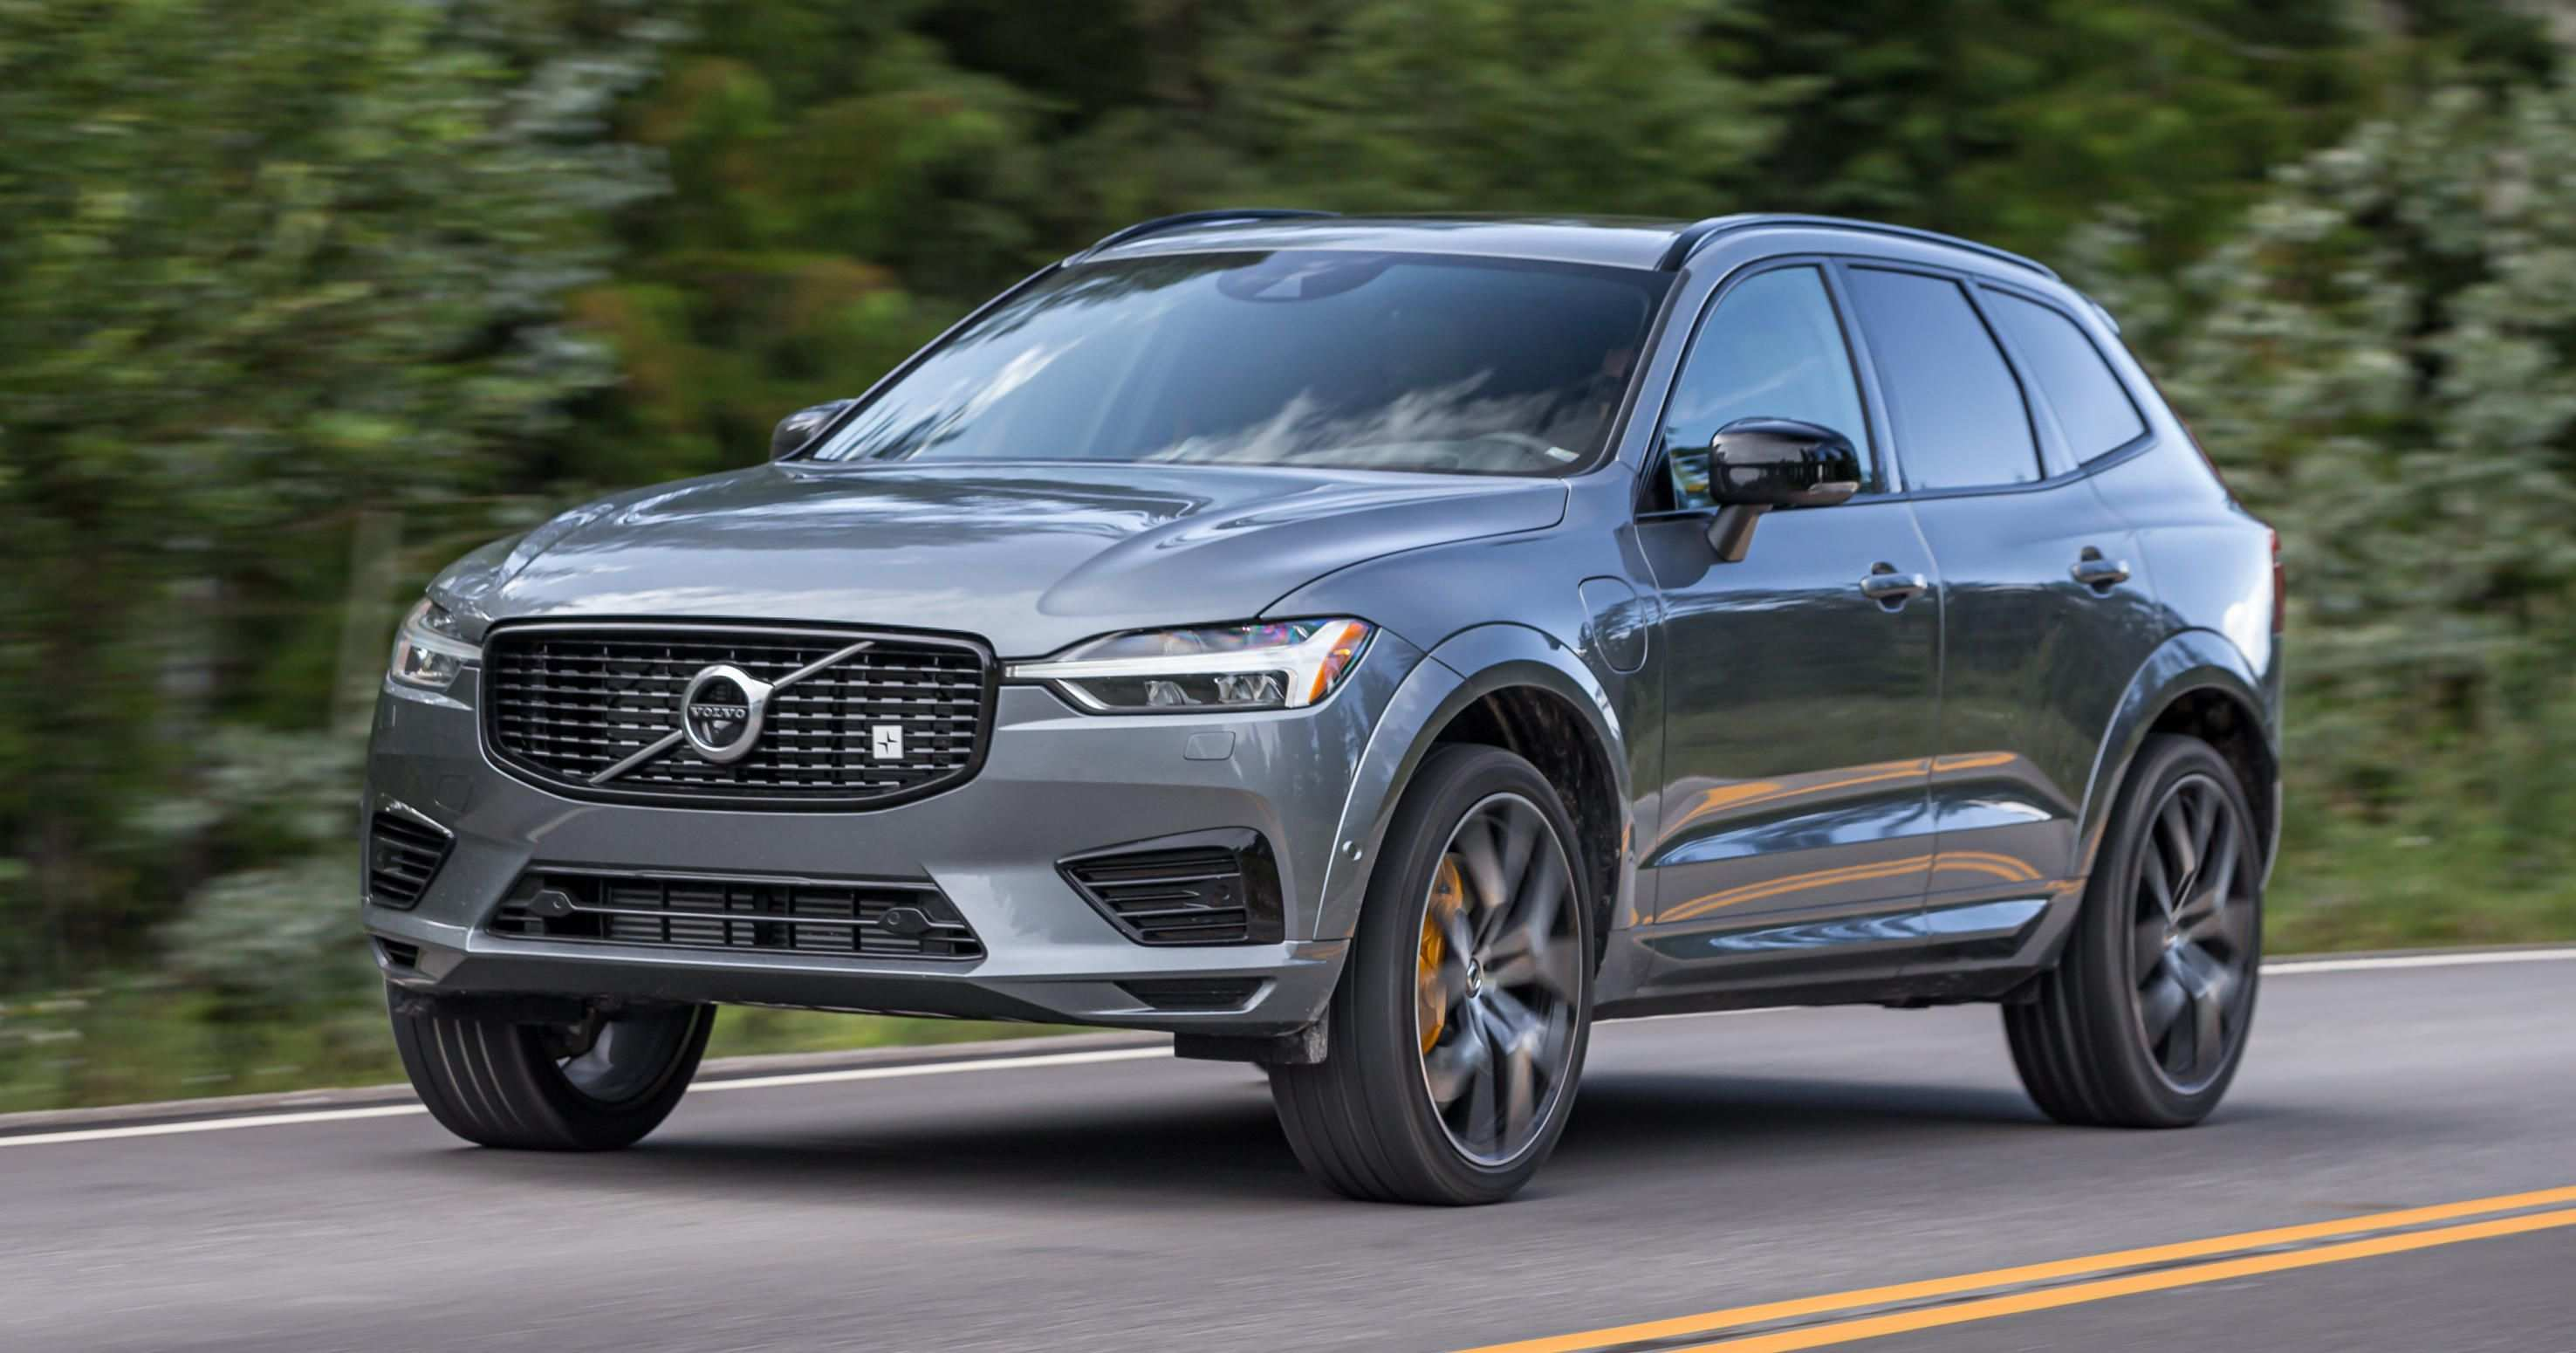 38 The Volvo Xc60 Model Year 2020 Photos with Volvo Xc60 Model Year 2020